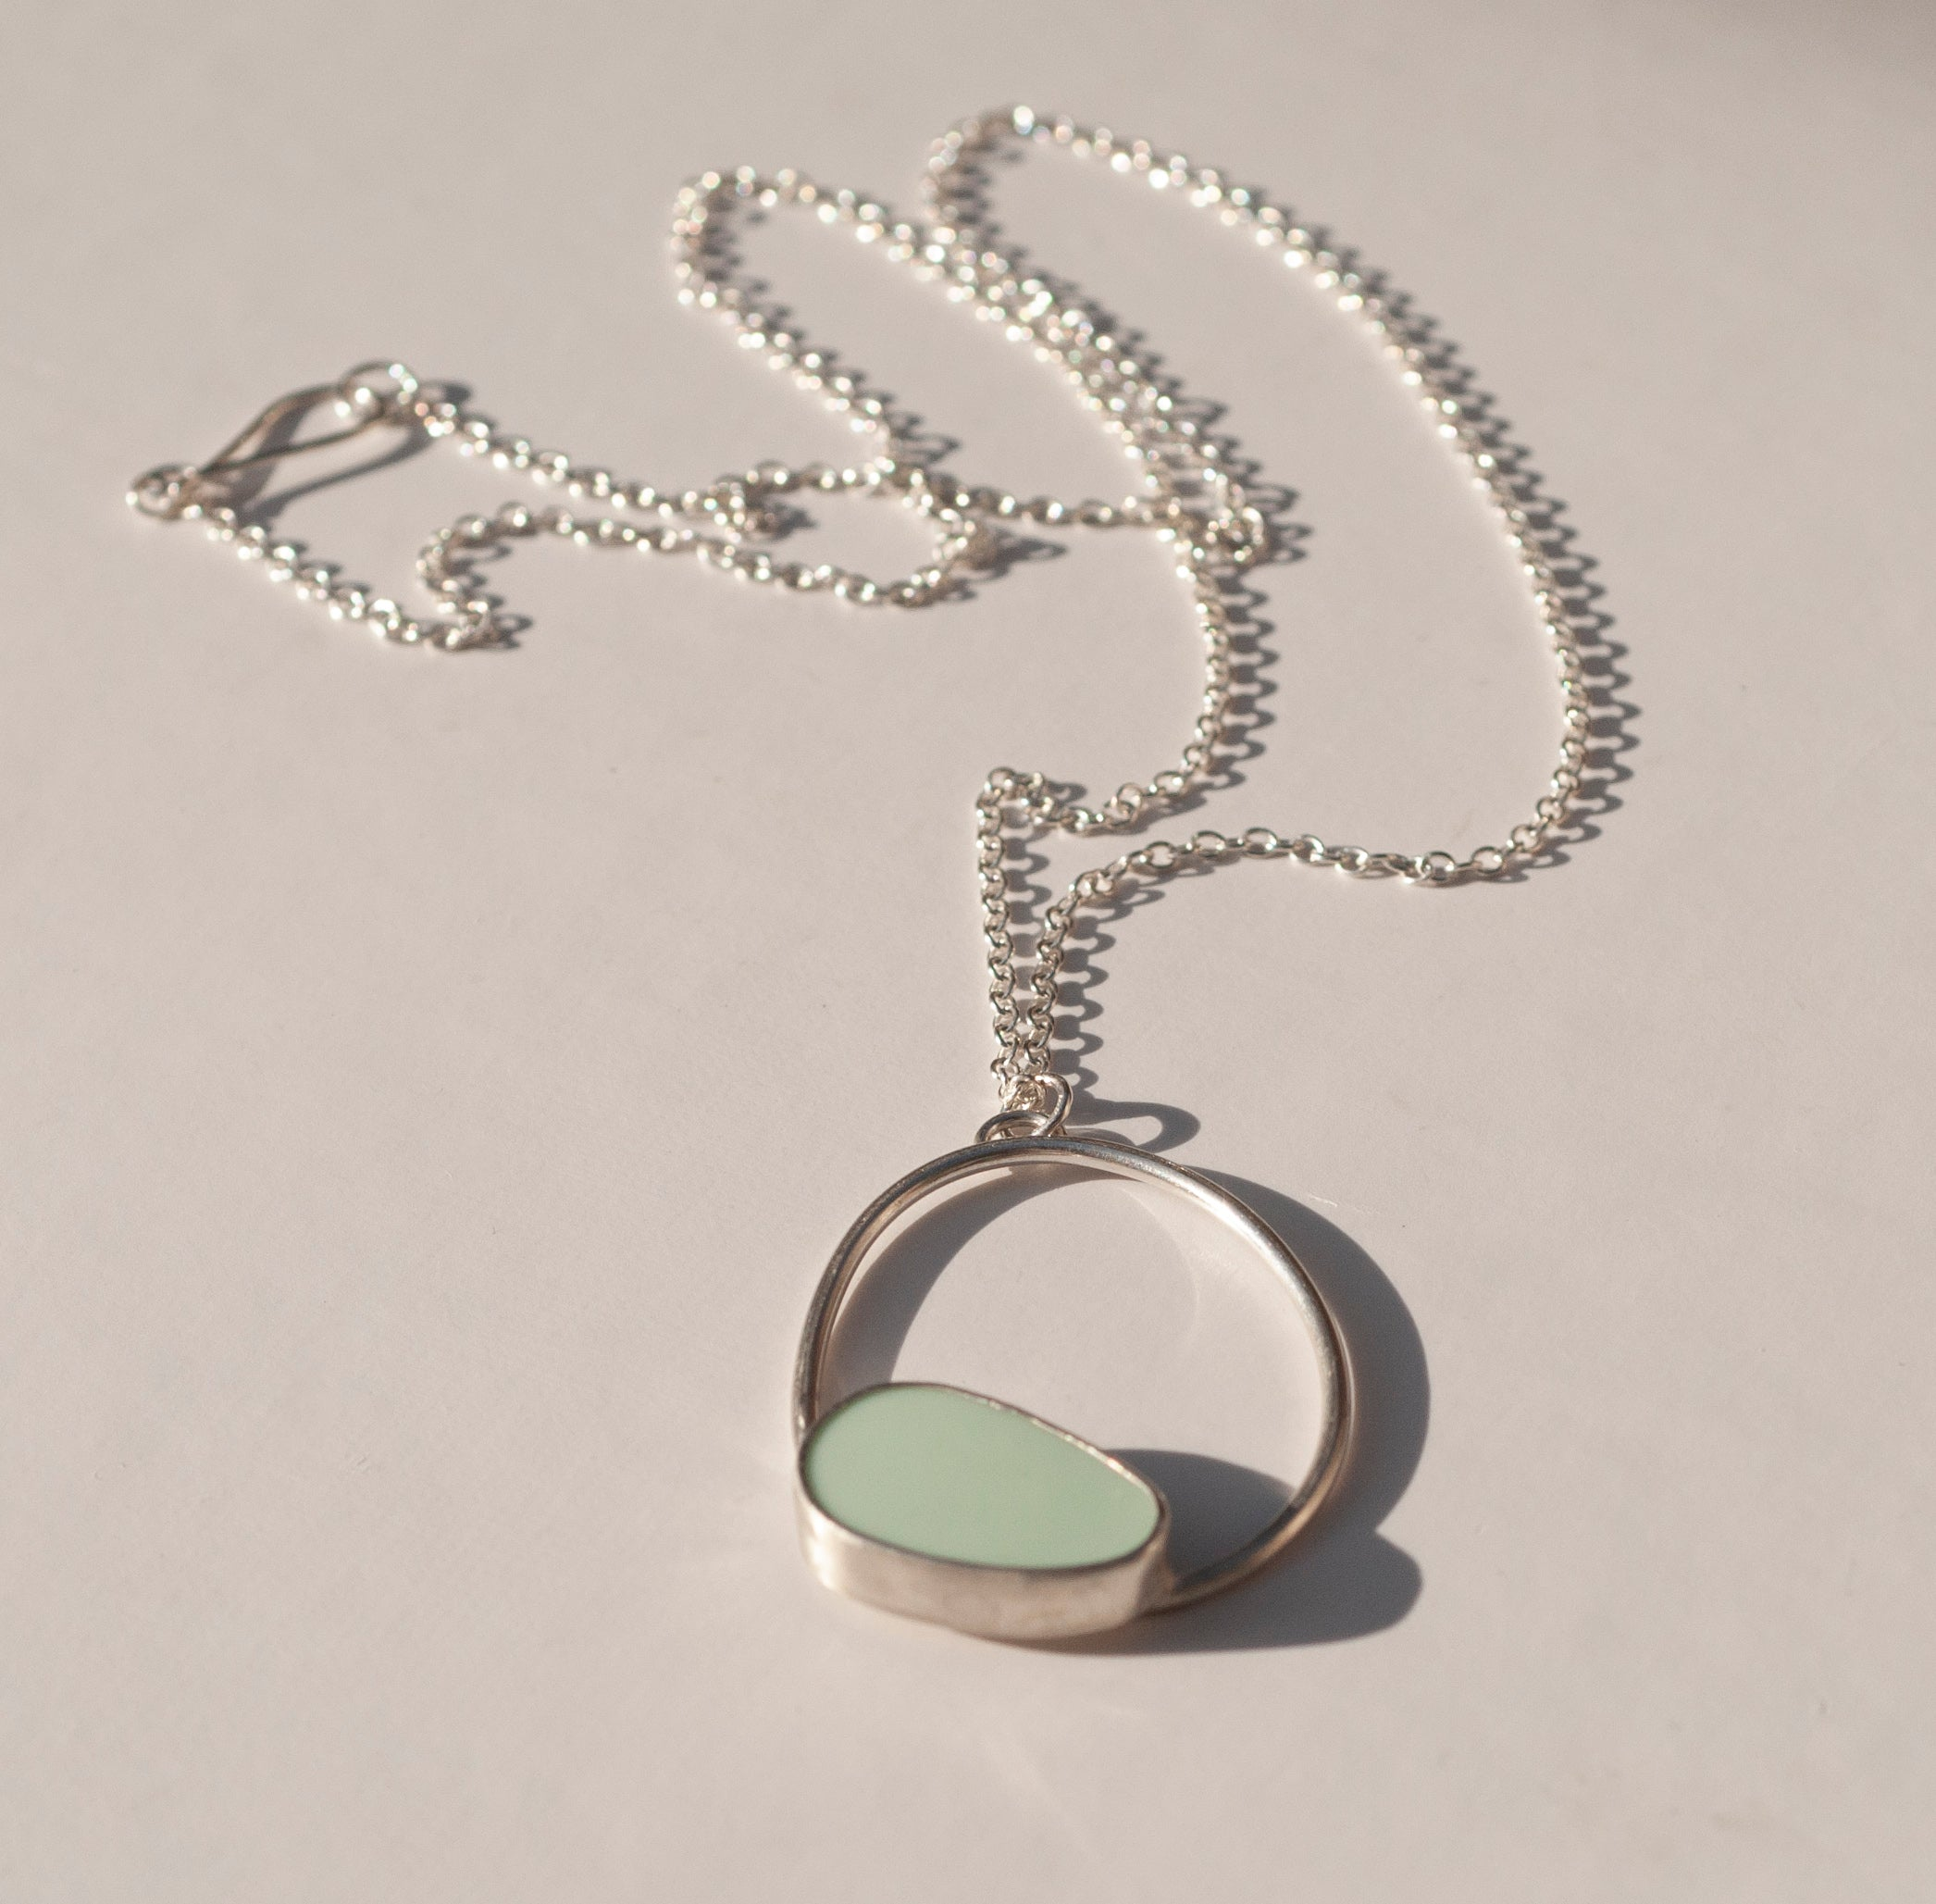 Single Pebble Necklace - Long